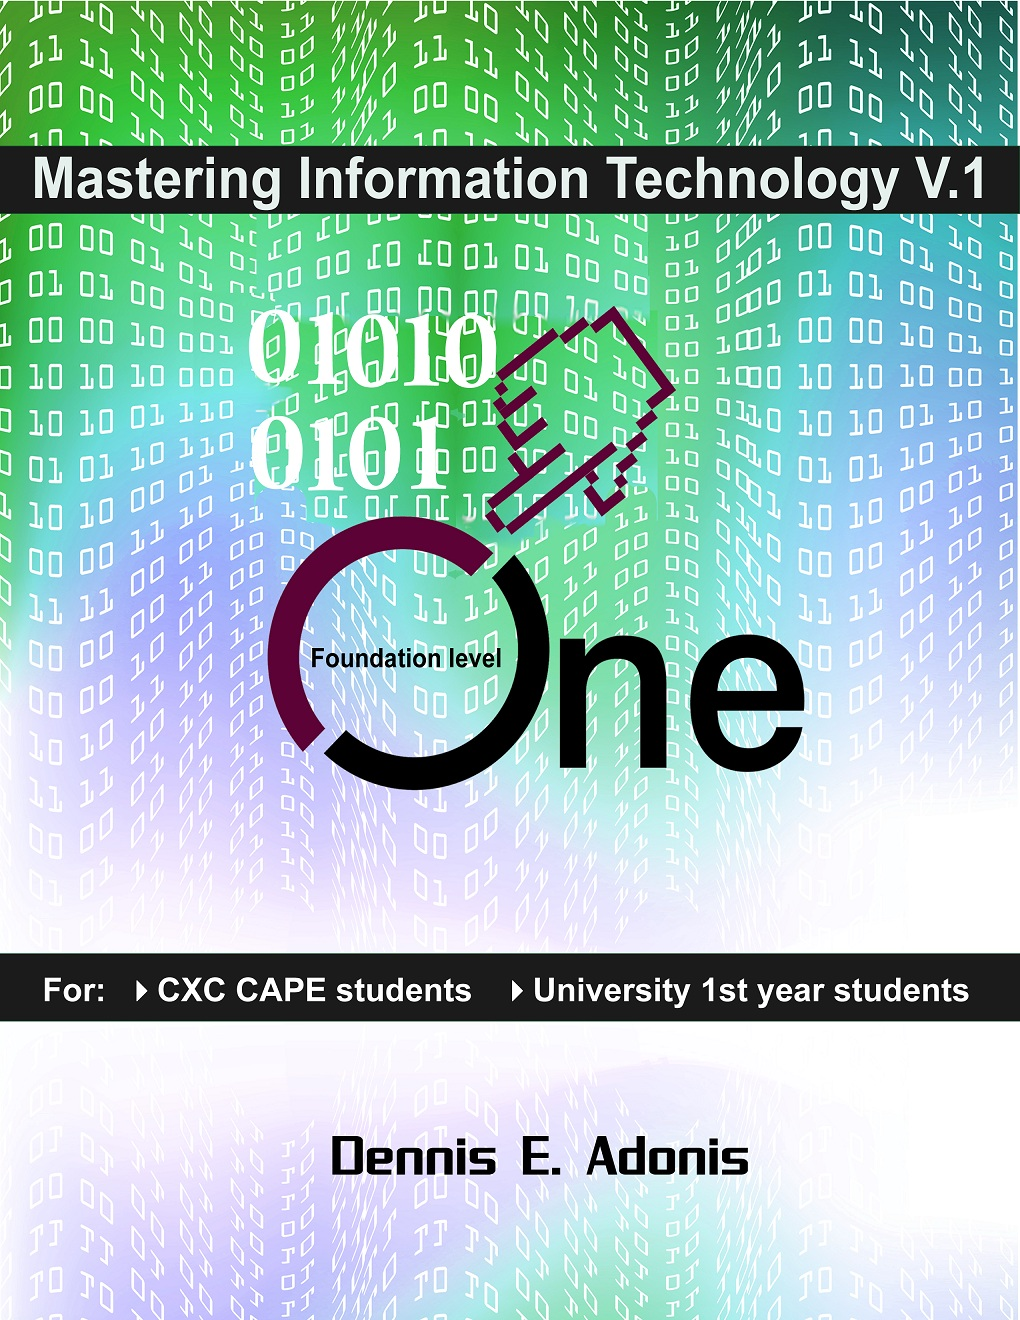 Mastering Information Technology for CSEC CAPE